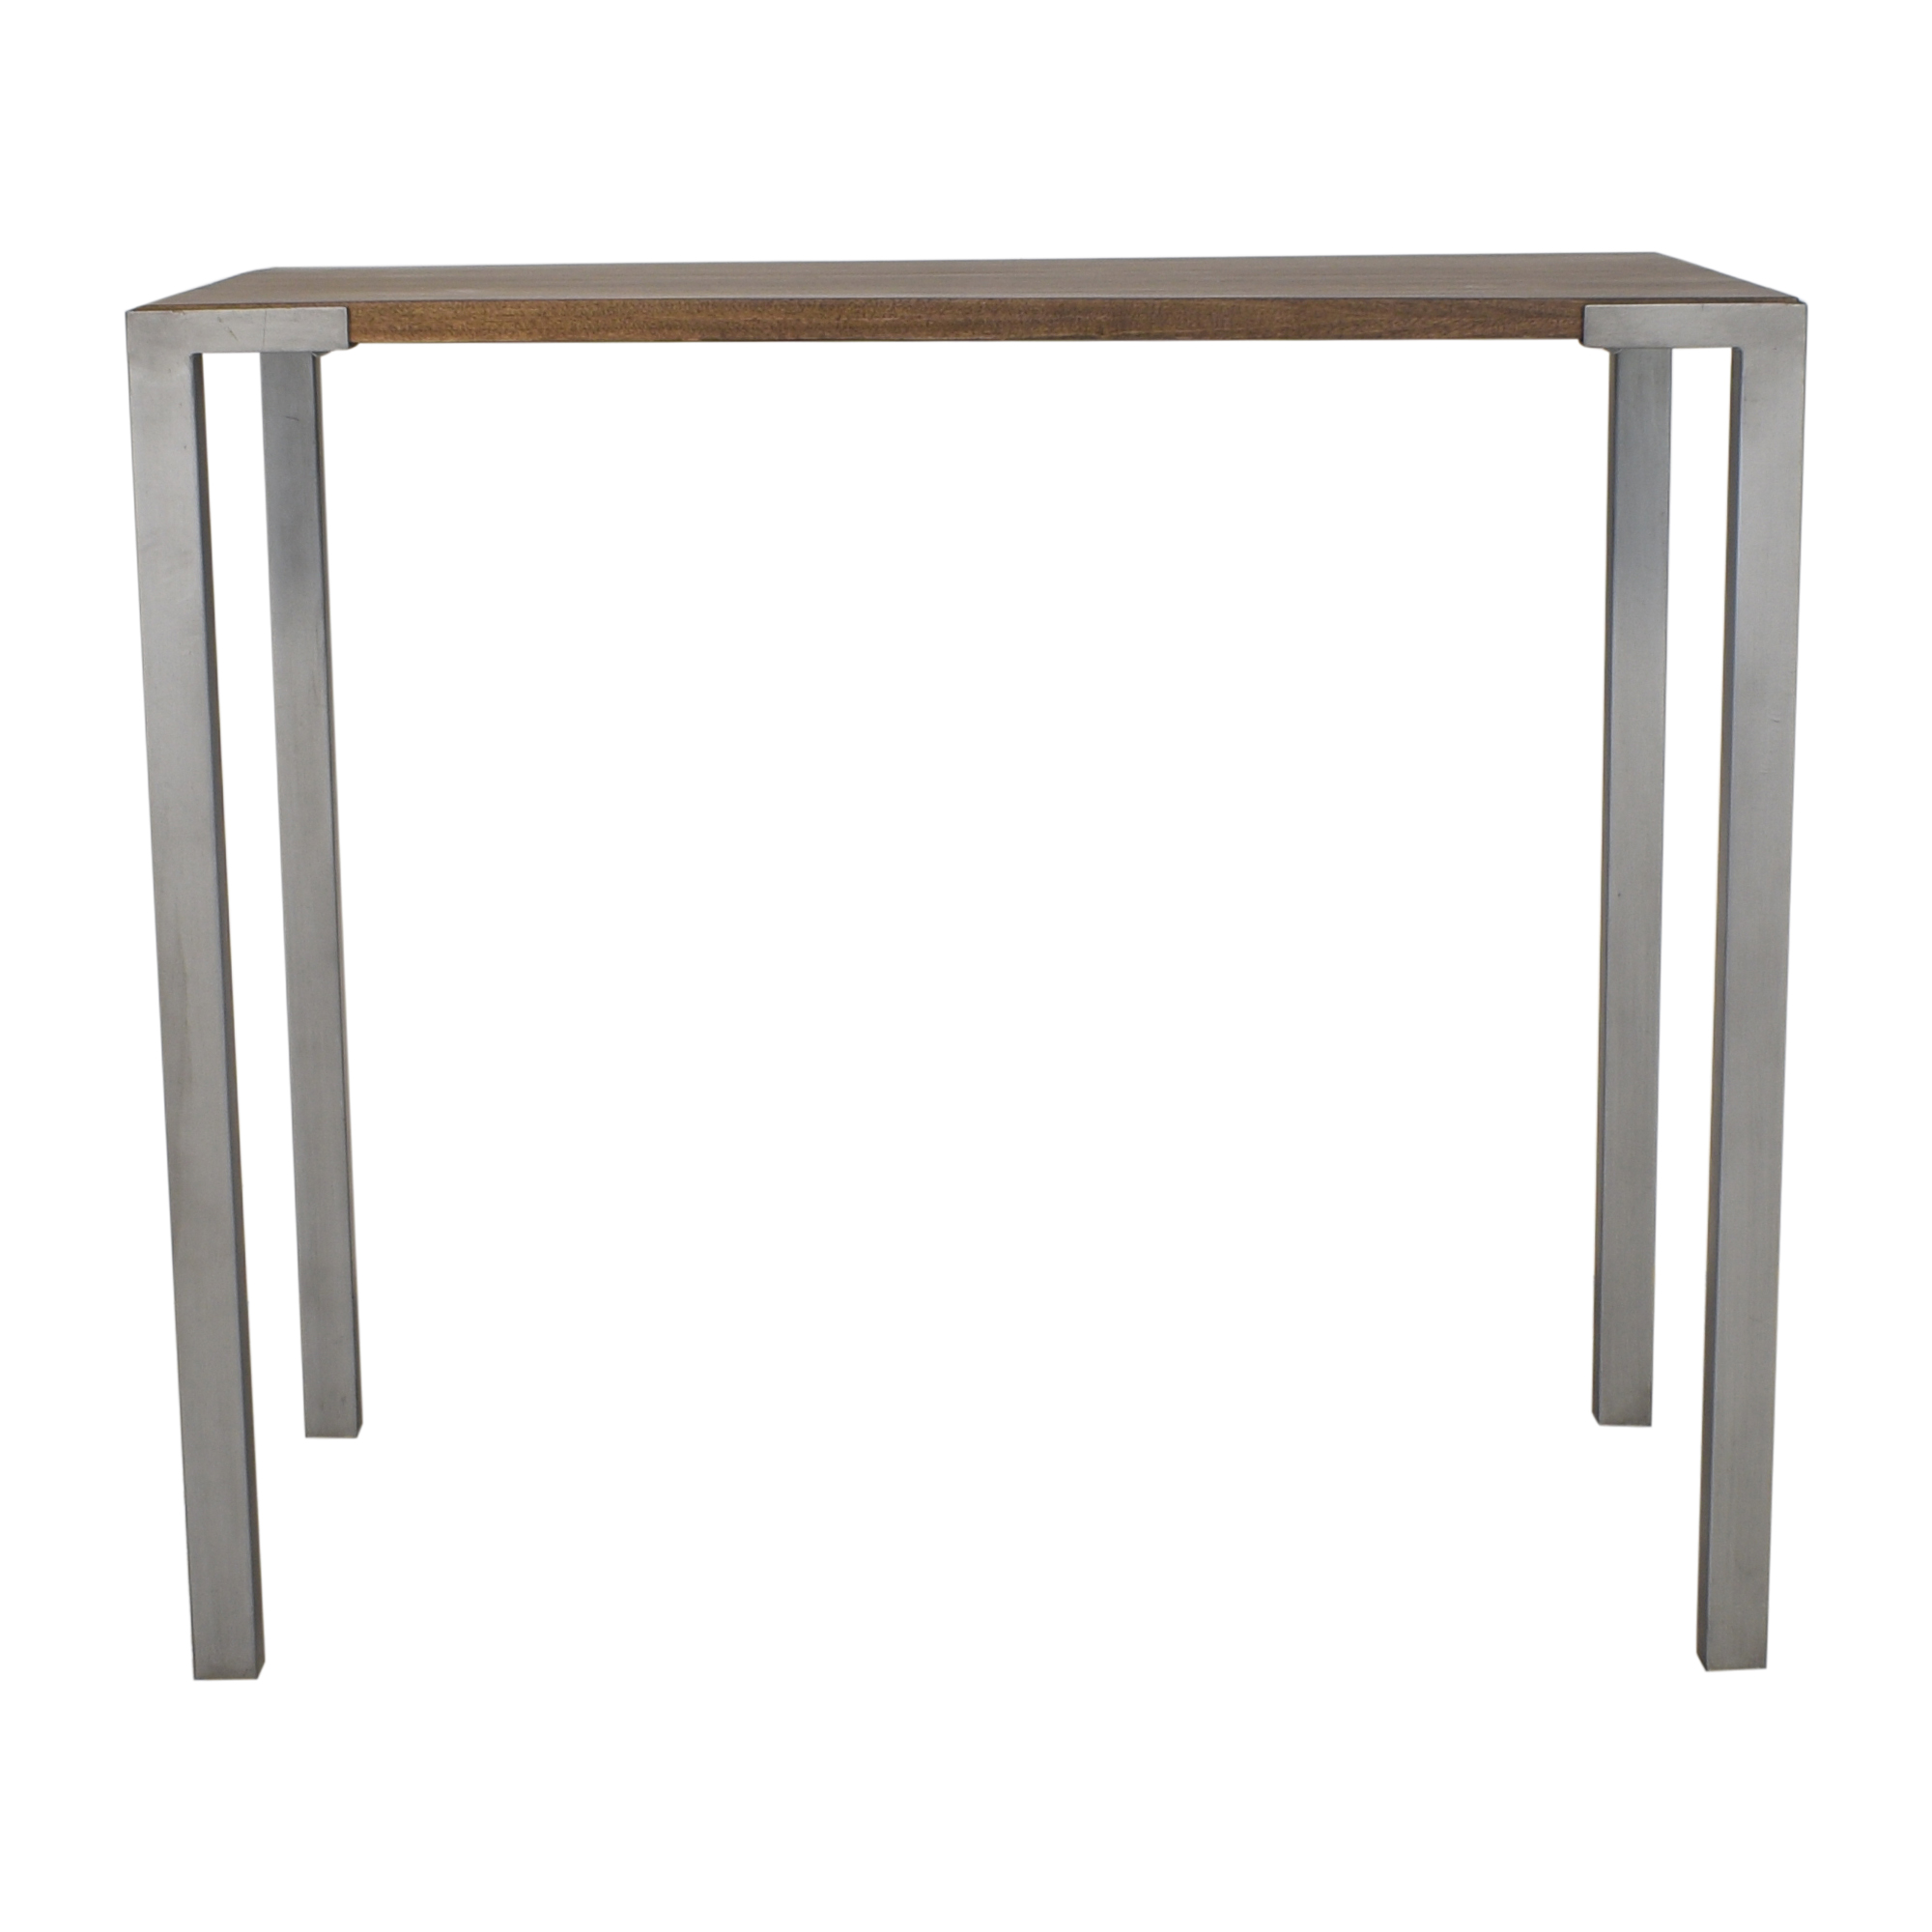 CB2 CB2 Stilt High Dining Table dimensions